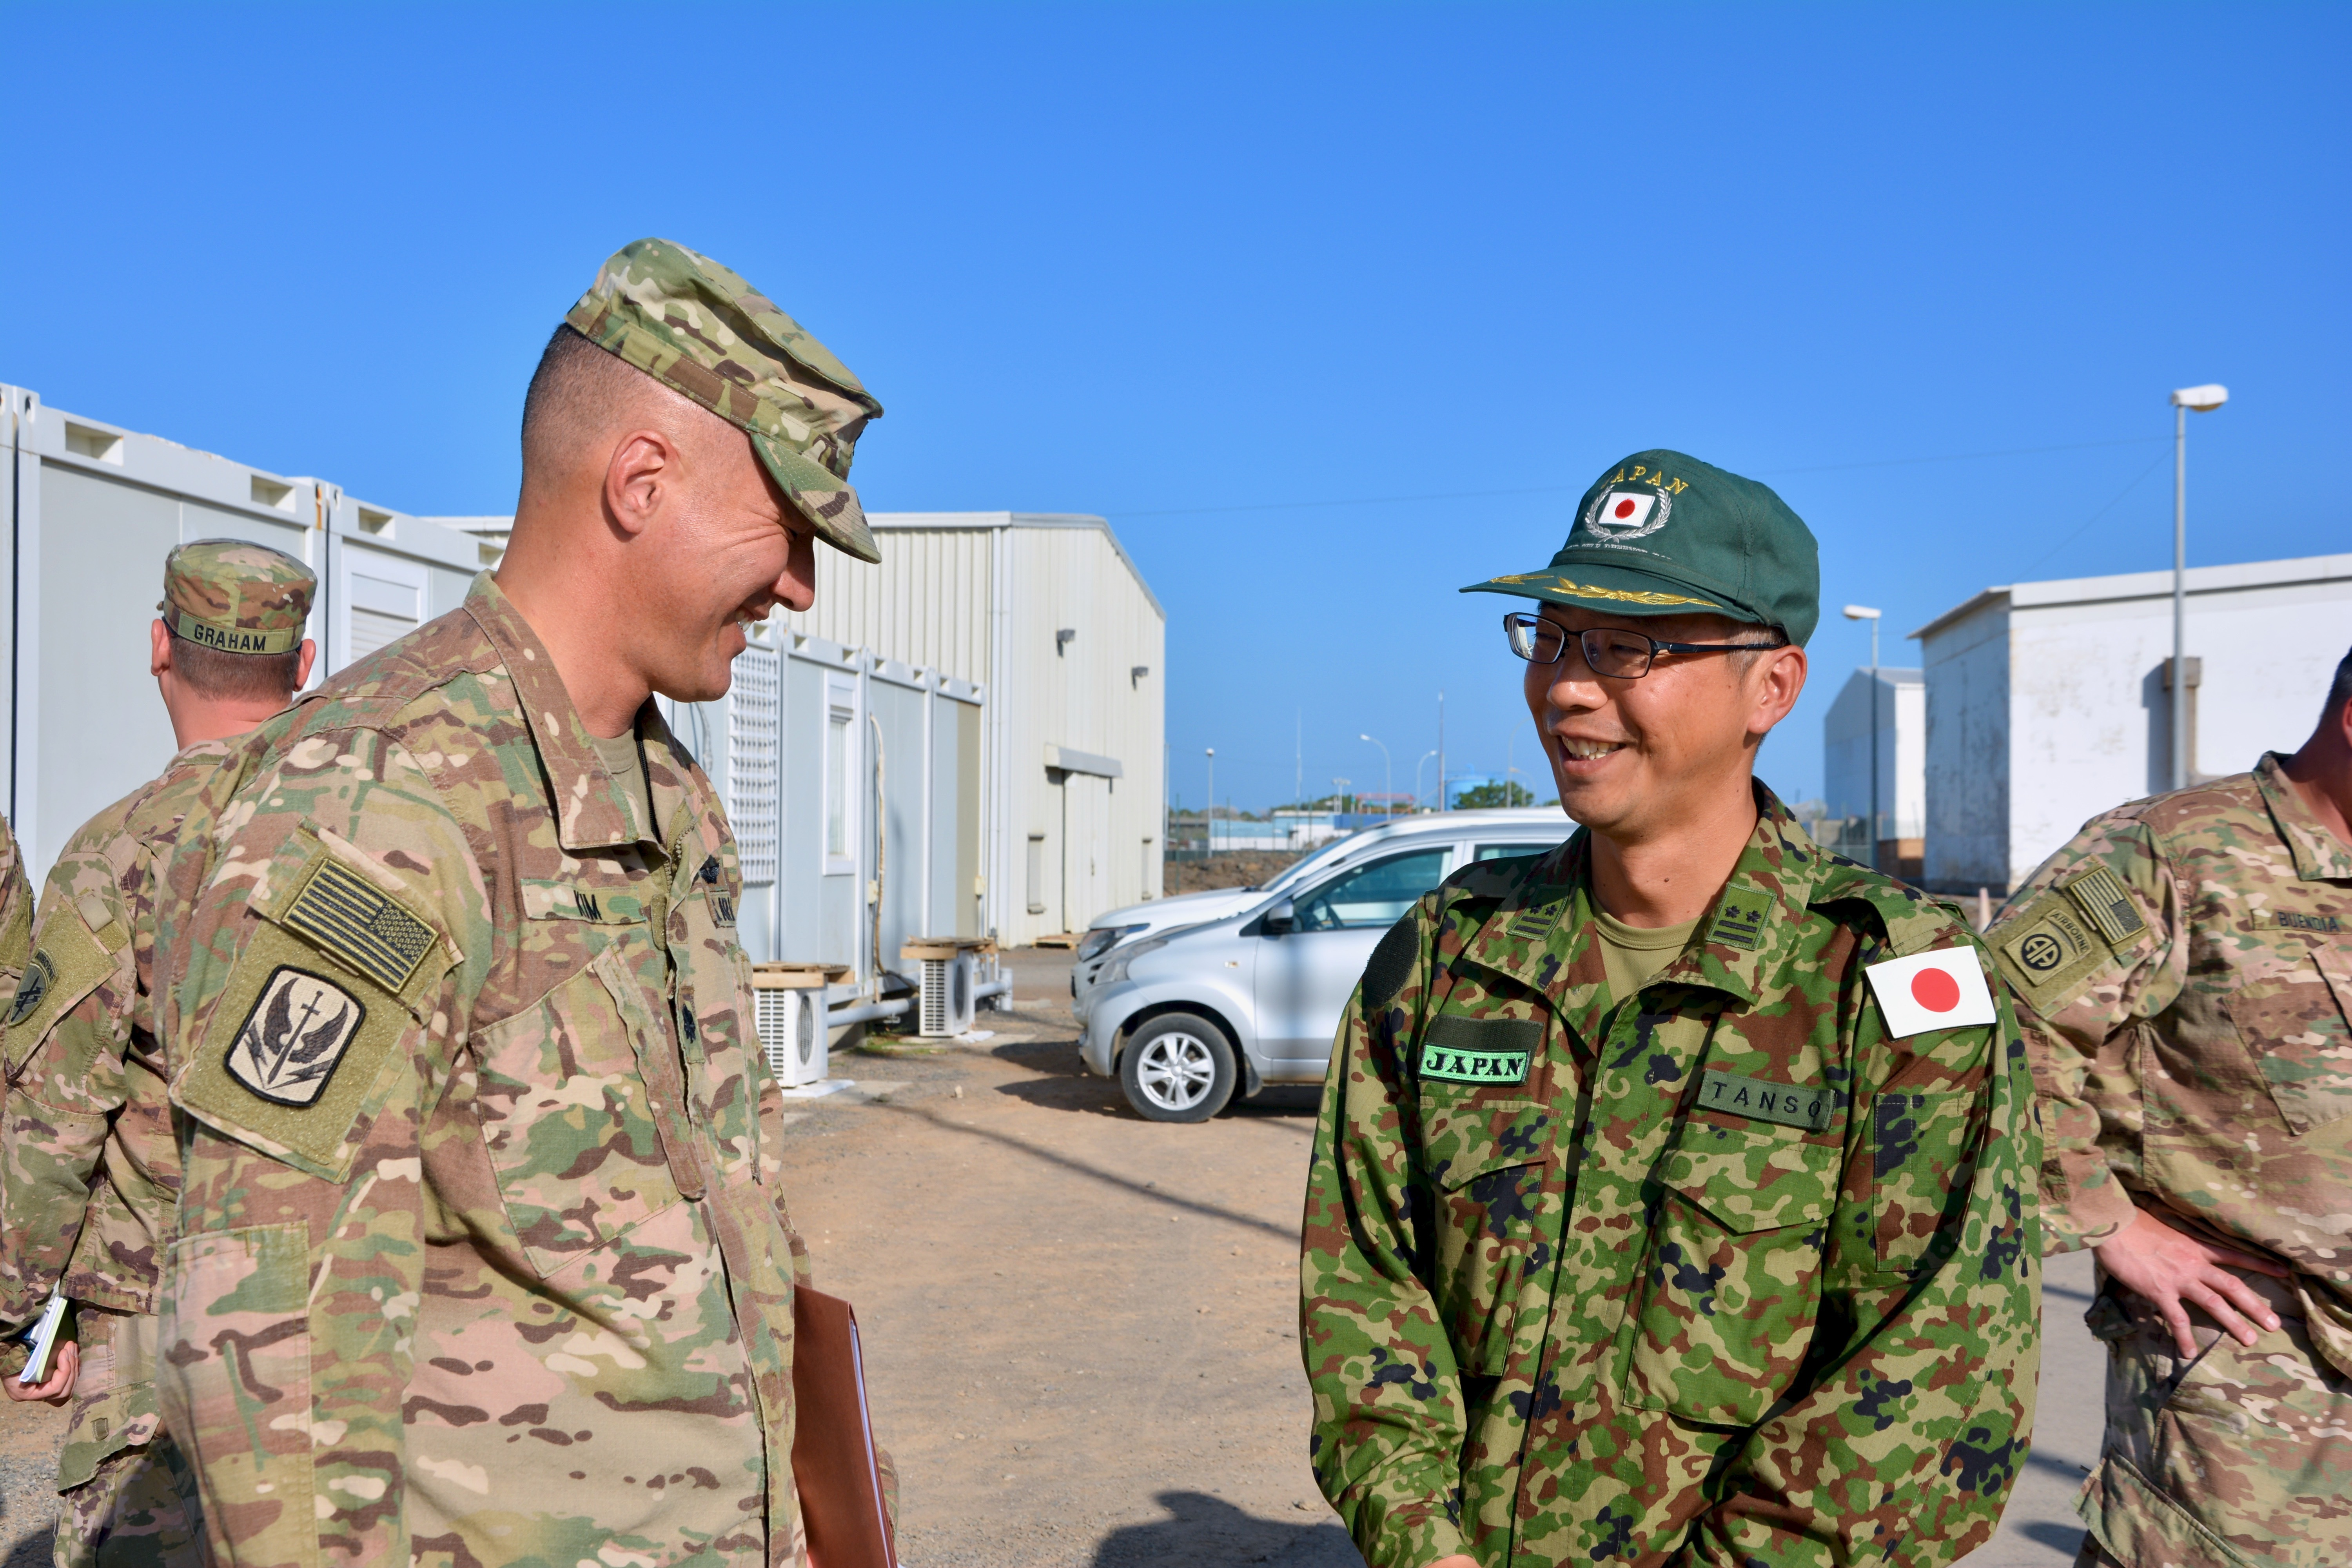 U.S. Army Lt. Col. Kenneth Kim, commander of the 403rd Civil Affairs Battalion, Mattydale, New York, greets Japan Ground Self-Defense Force Col. Masatoshi Tanso during a key leadership engagement at Japan Self-Defense Force Base, Djibouti, Nov. 21, 2018. Japanese and U.S. leadership met to discuss ways to build relationships across the Combined Joint Operations Area. (U.S. Army Photo by Capt. Olivia Cobiskey)